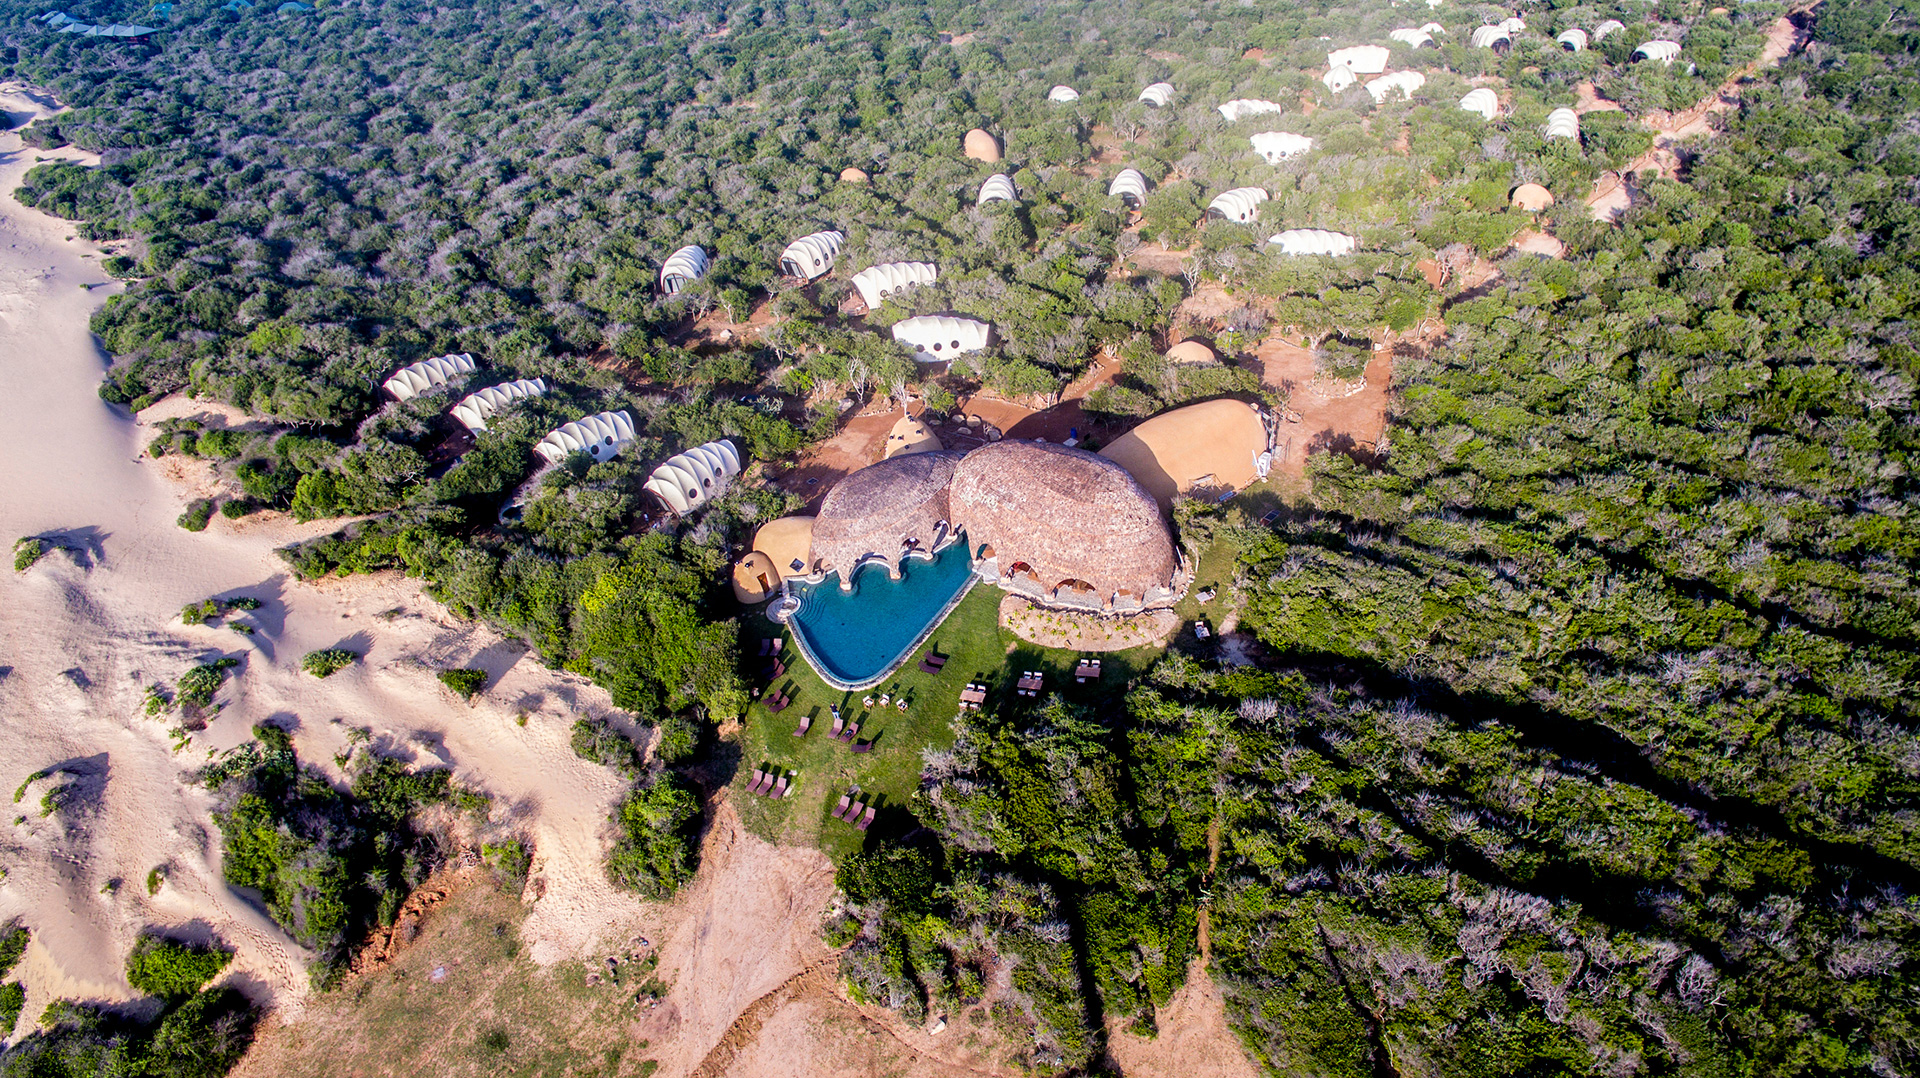 Aerial view of the Wild Coast Tented Lodge, Srilanka |Glamping| Resorts | STIRworld